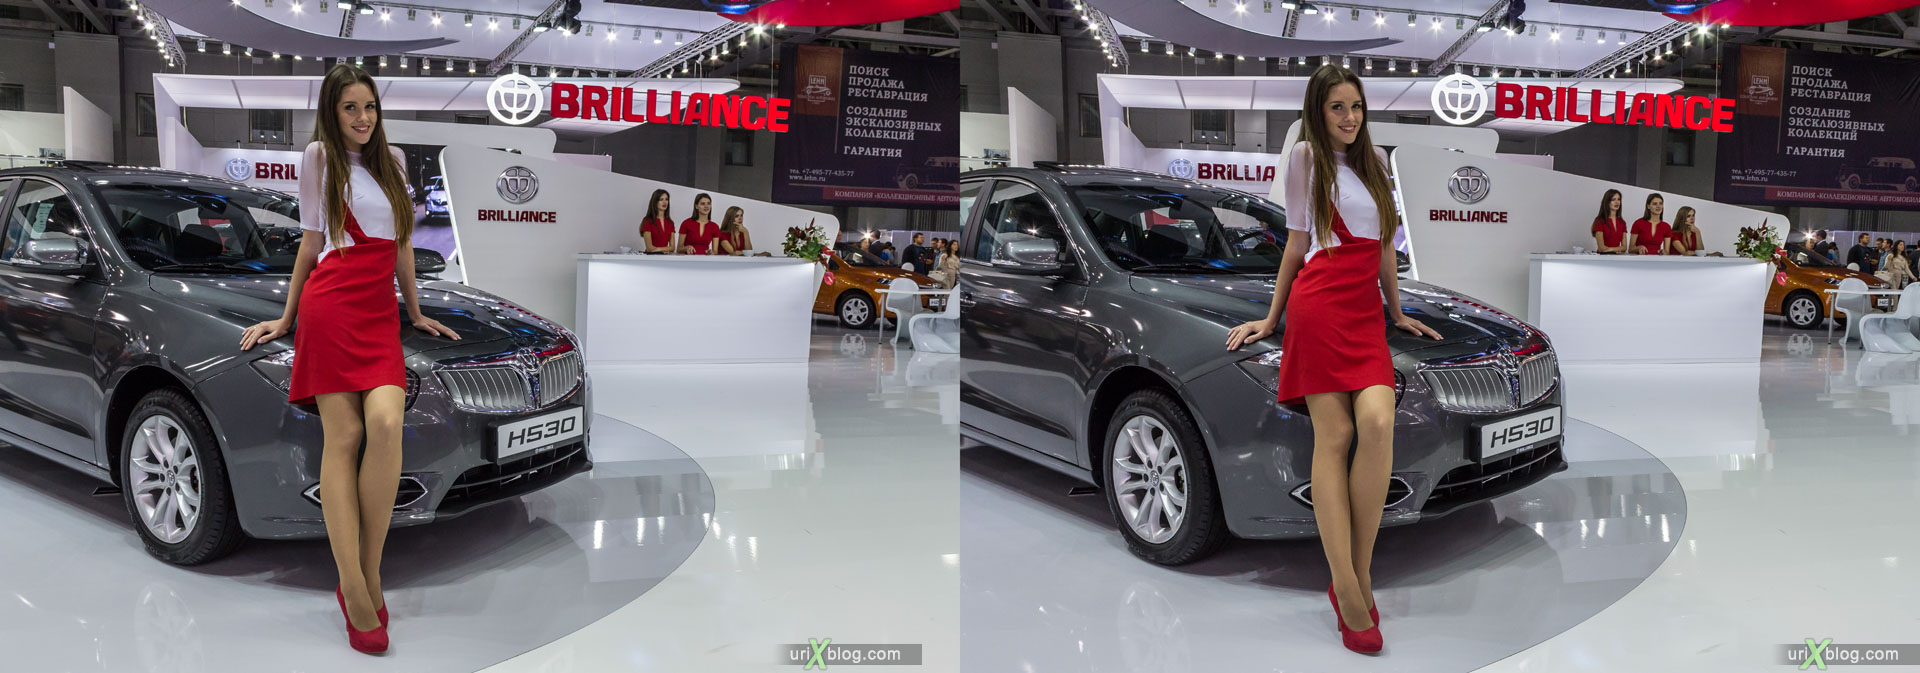 Brilliance H530, Moscow International Automobile Salon 2014, MIAS 2014, girls, models, Crocus Expo, Moscow, Russia, 3D, stereo pair, cross-eyed, crossview, cross view stereo pair, stereoscopic, 2014